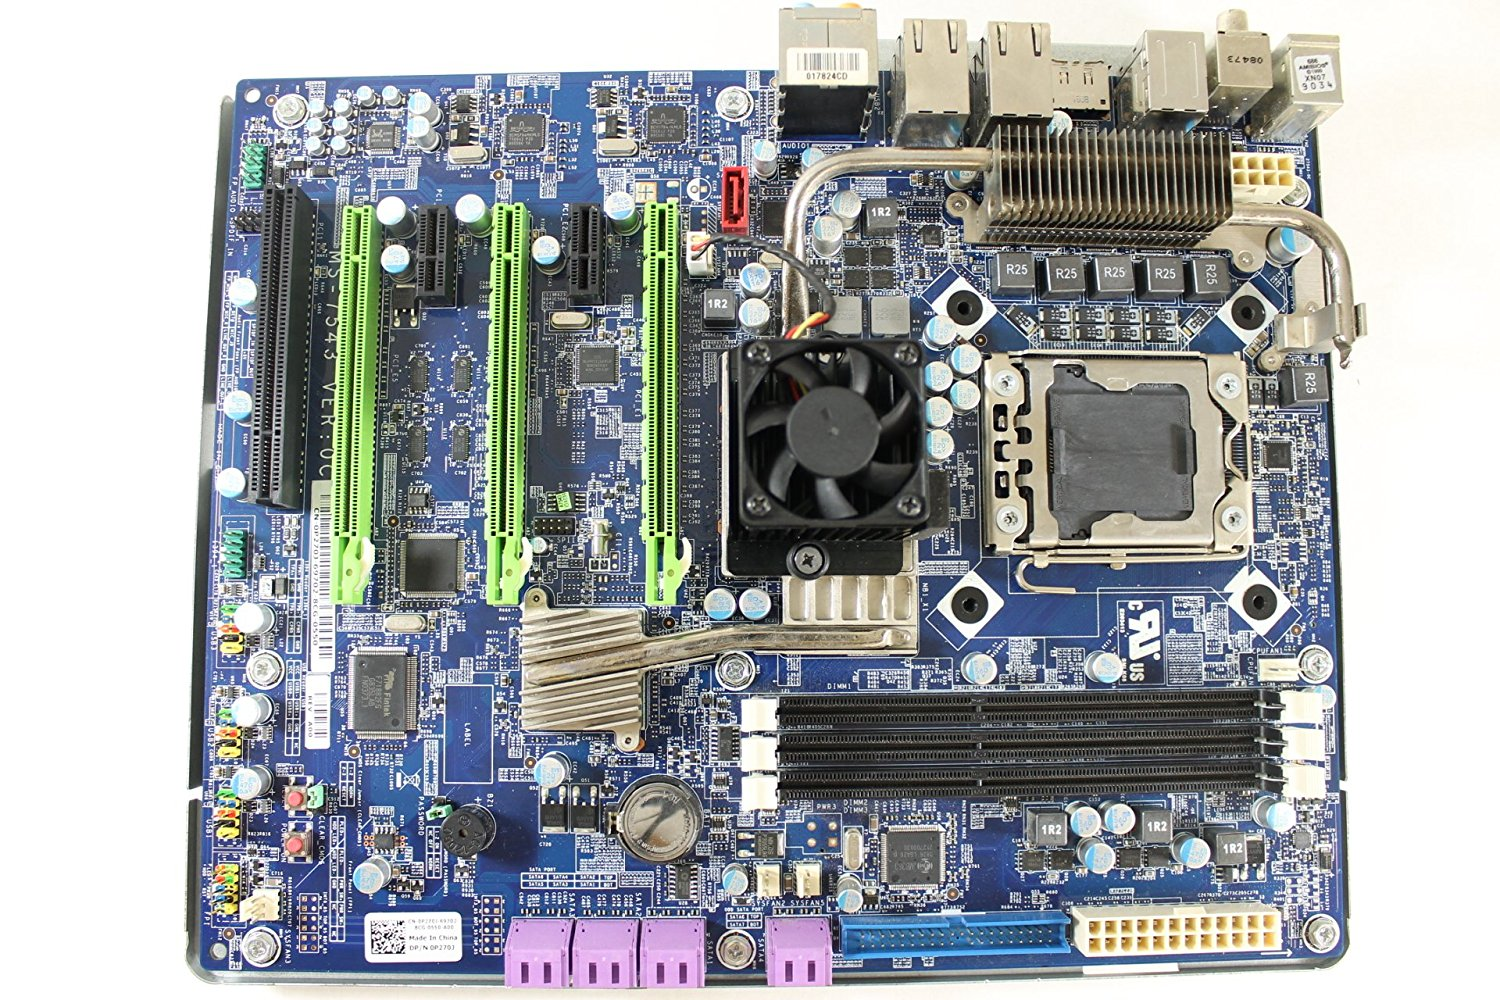 P270J Dell Dimension XPS 730 Core 2 Duo/Core 2 Quad/Core 2 Extreme System Board W/O CPU